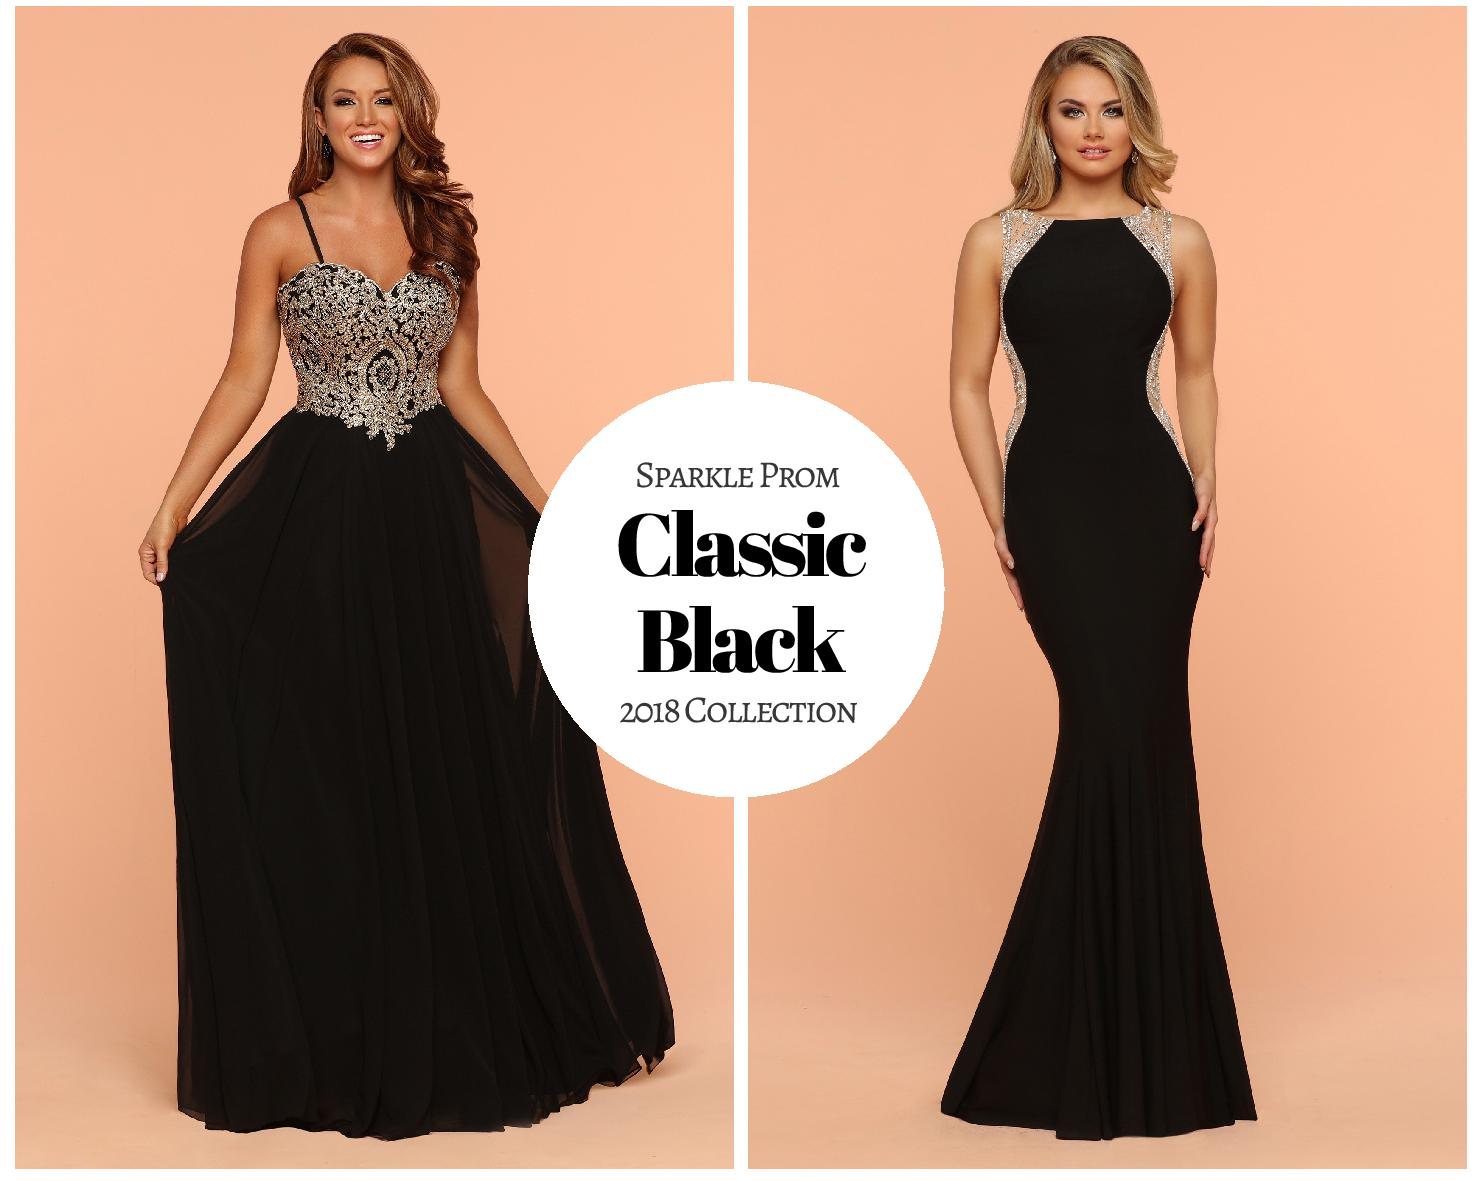 Sparkle Prom Girl's Color Guide: Classic Black Prom Gowns – 2018 Collection